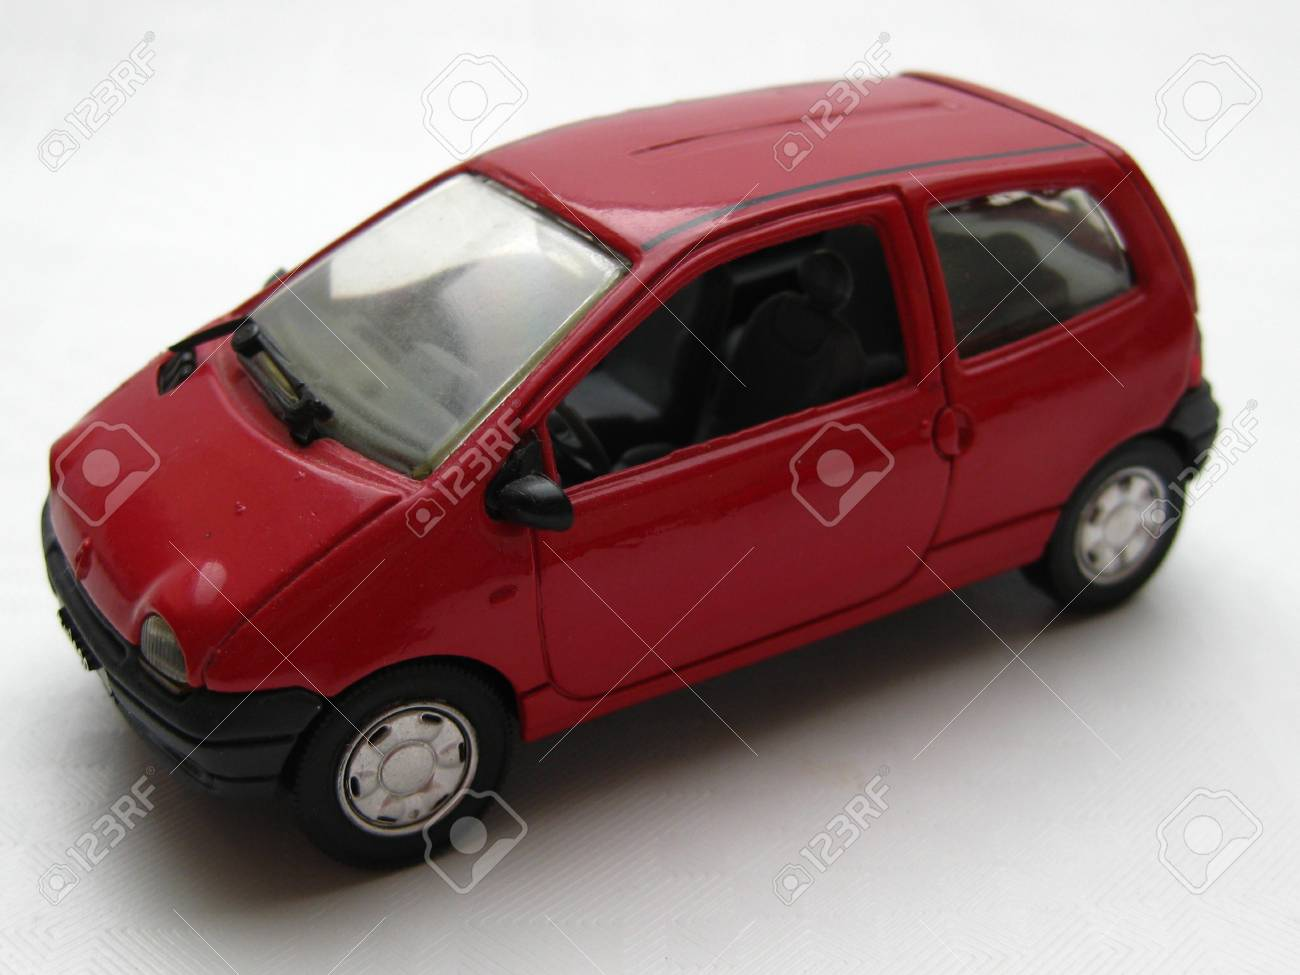 red toy car Stock Photo - 4751653